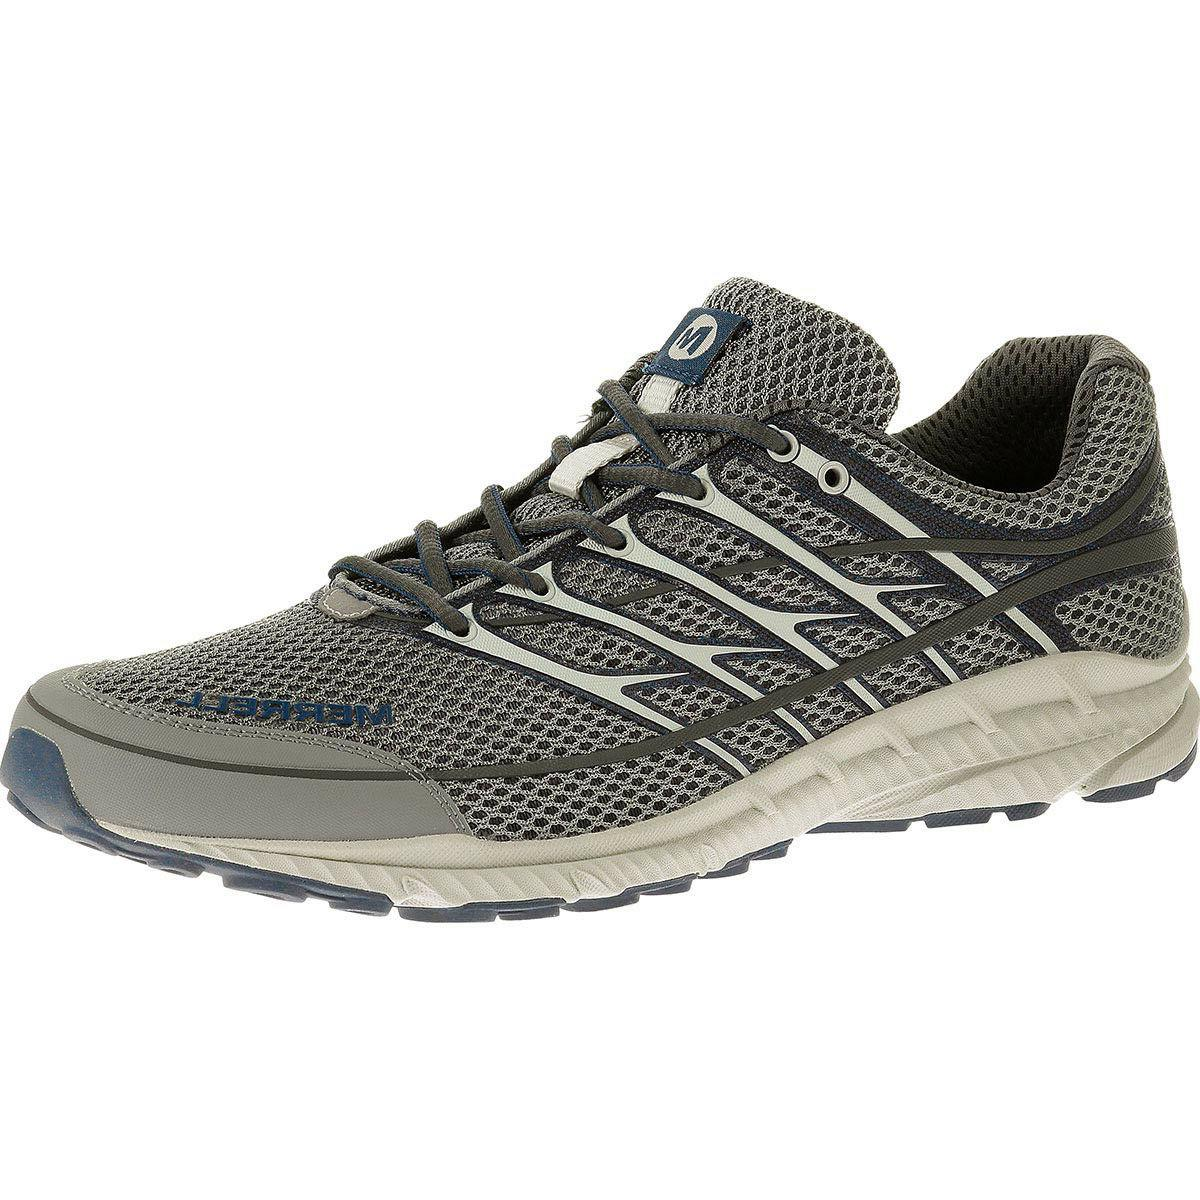 Merrell Mix Master Move Shoe